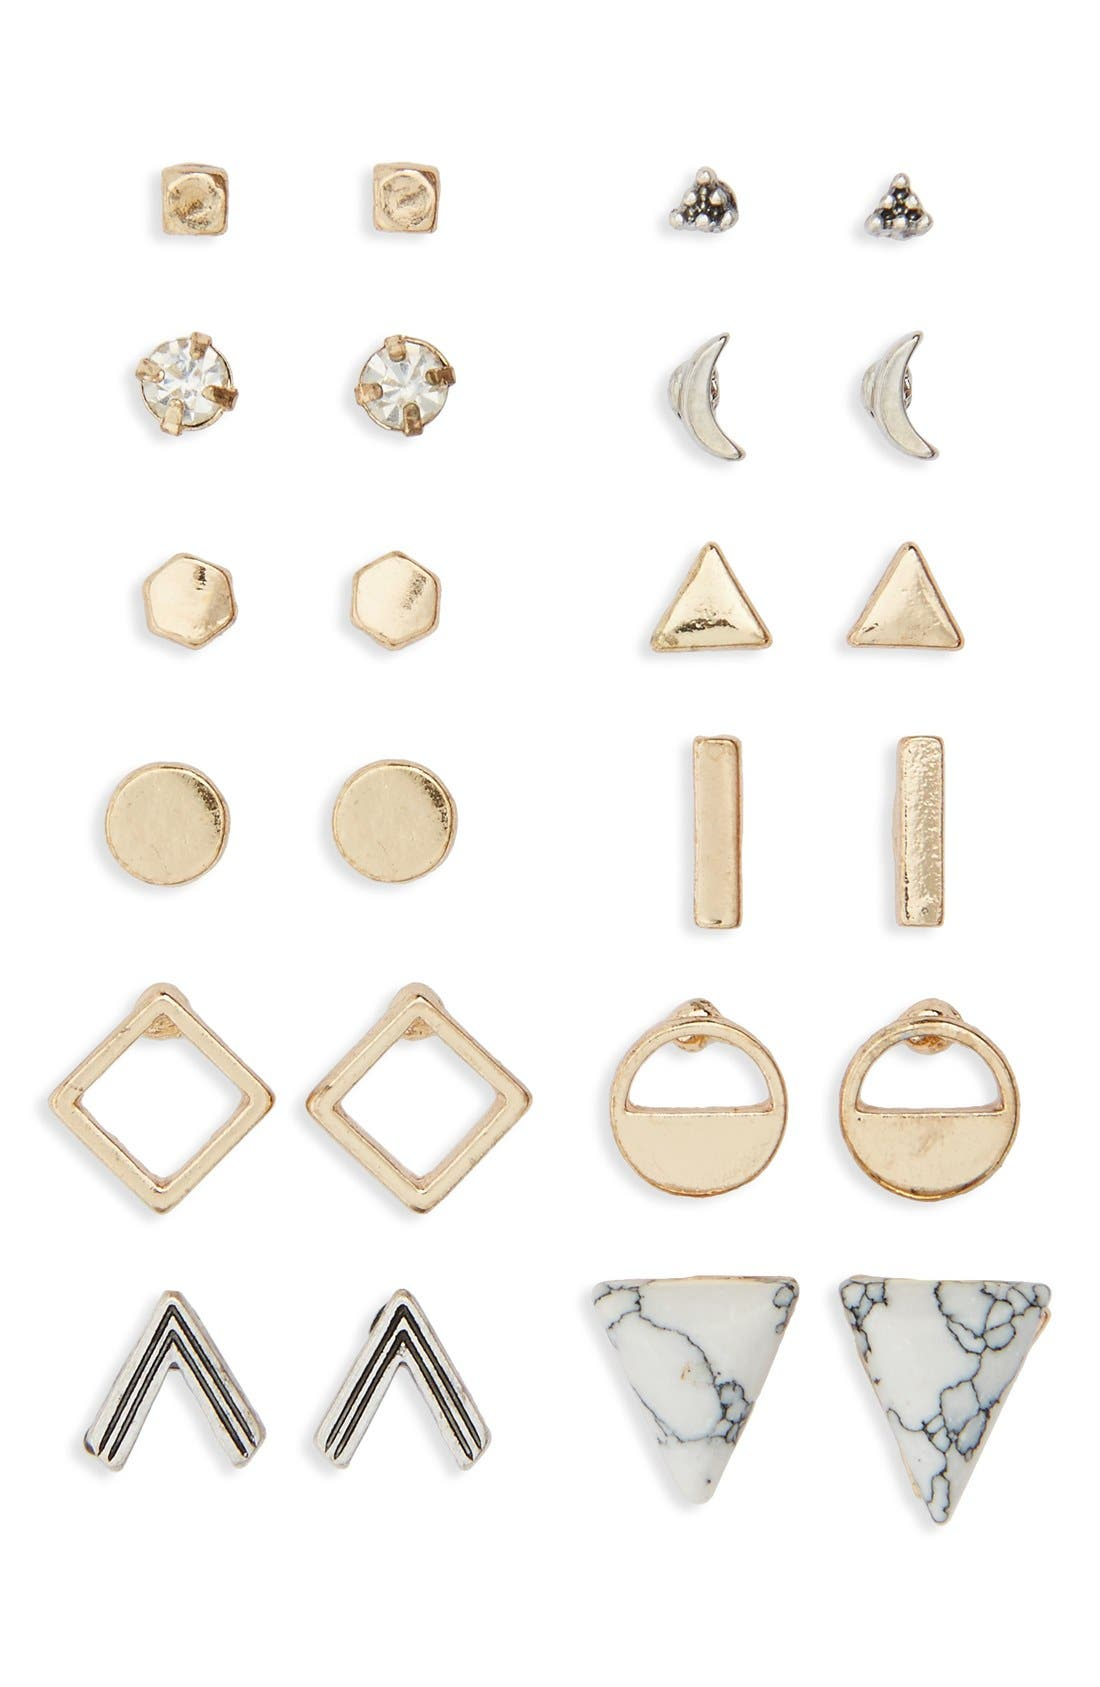 Alternate Image 1 Selected - BP. Geometric Stud Earrings (Set of 12)